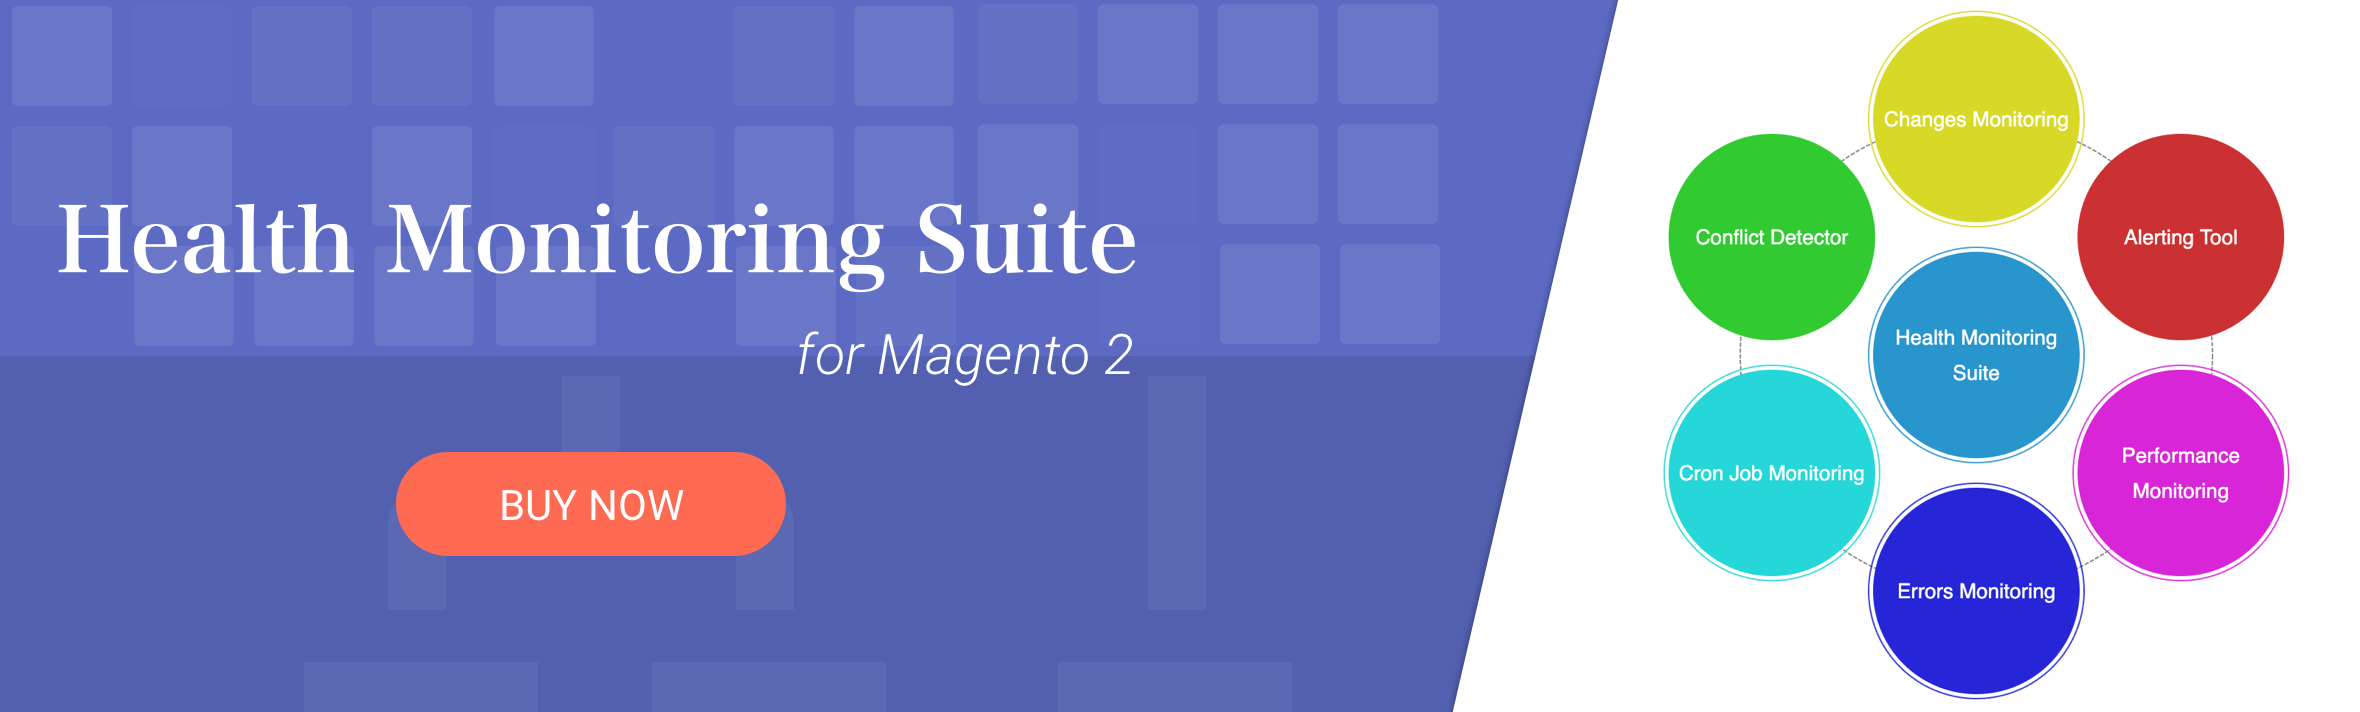 Health Monitoring Suite for Magento 2